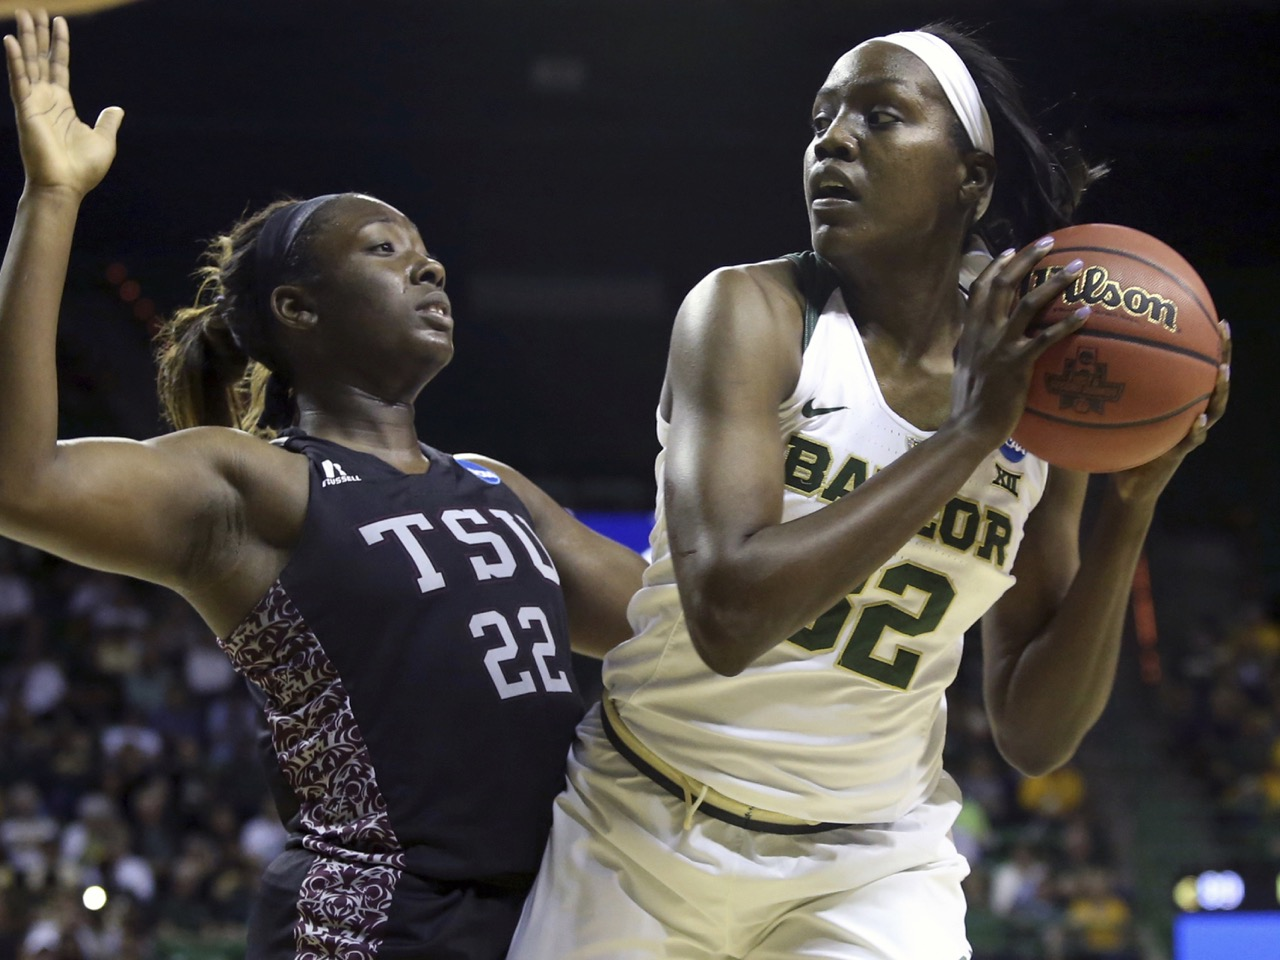 Baylor forward/center Beatrice Mompremier (32) Texas Southern forward Breasia McElrath (22)